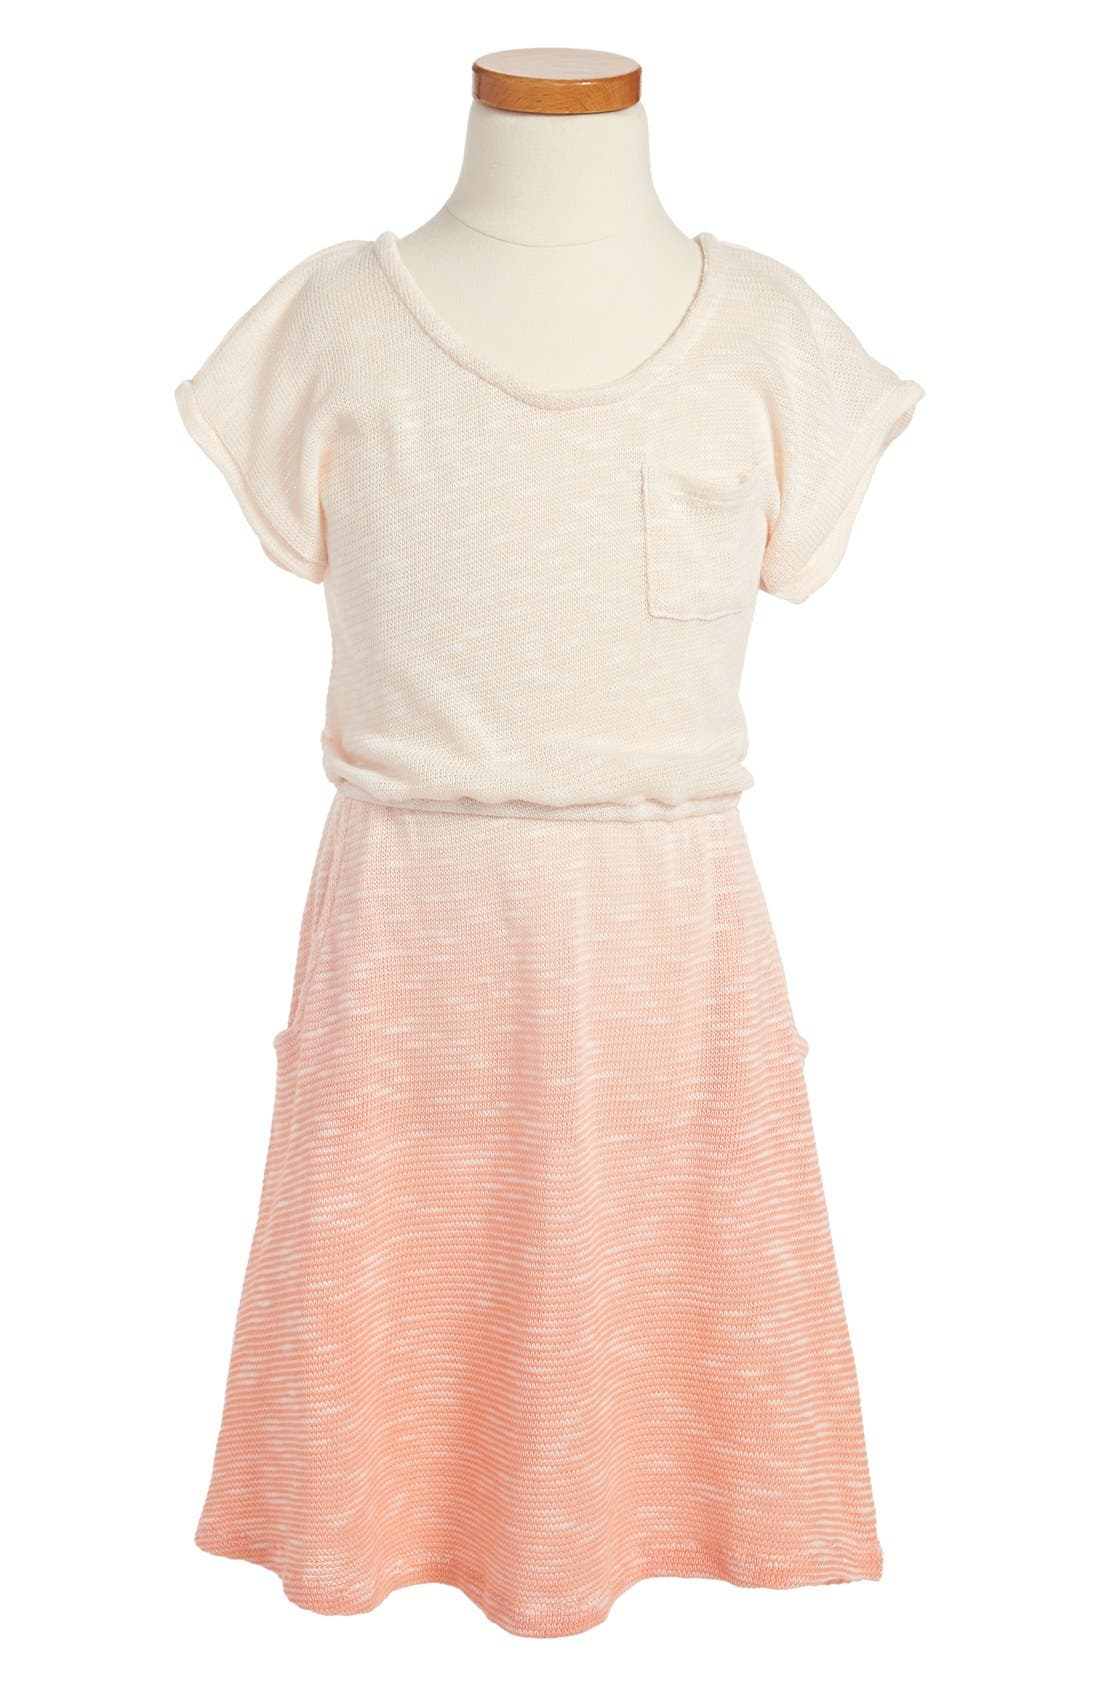 Main Image - Roxy 'Sunny Slope' Short Sleeve Dress (Big Girls)